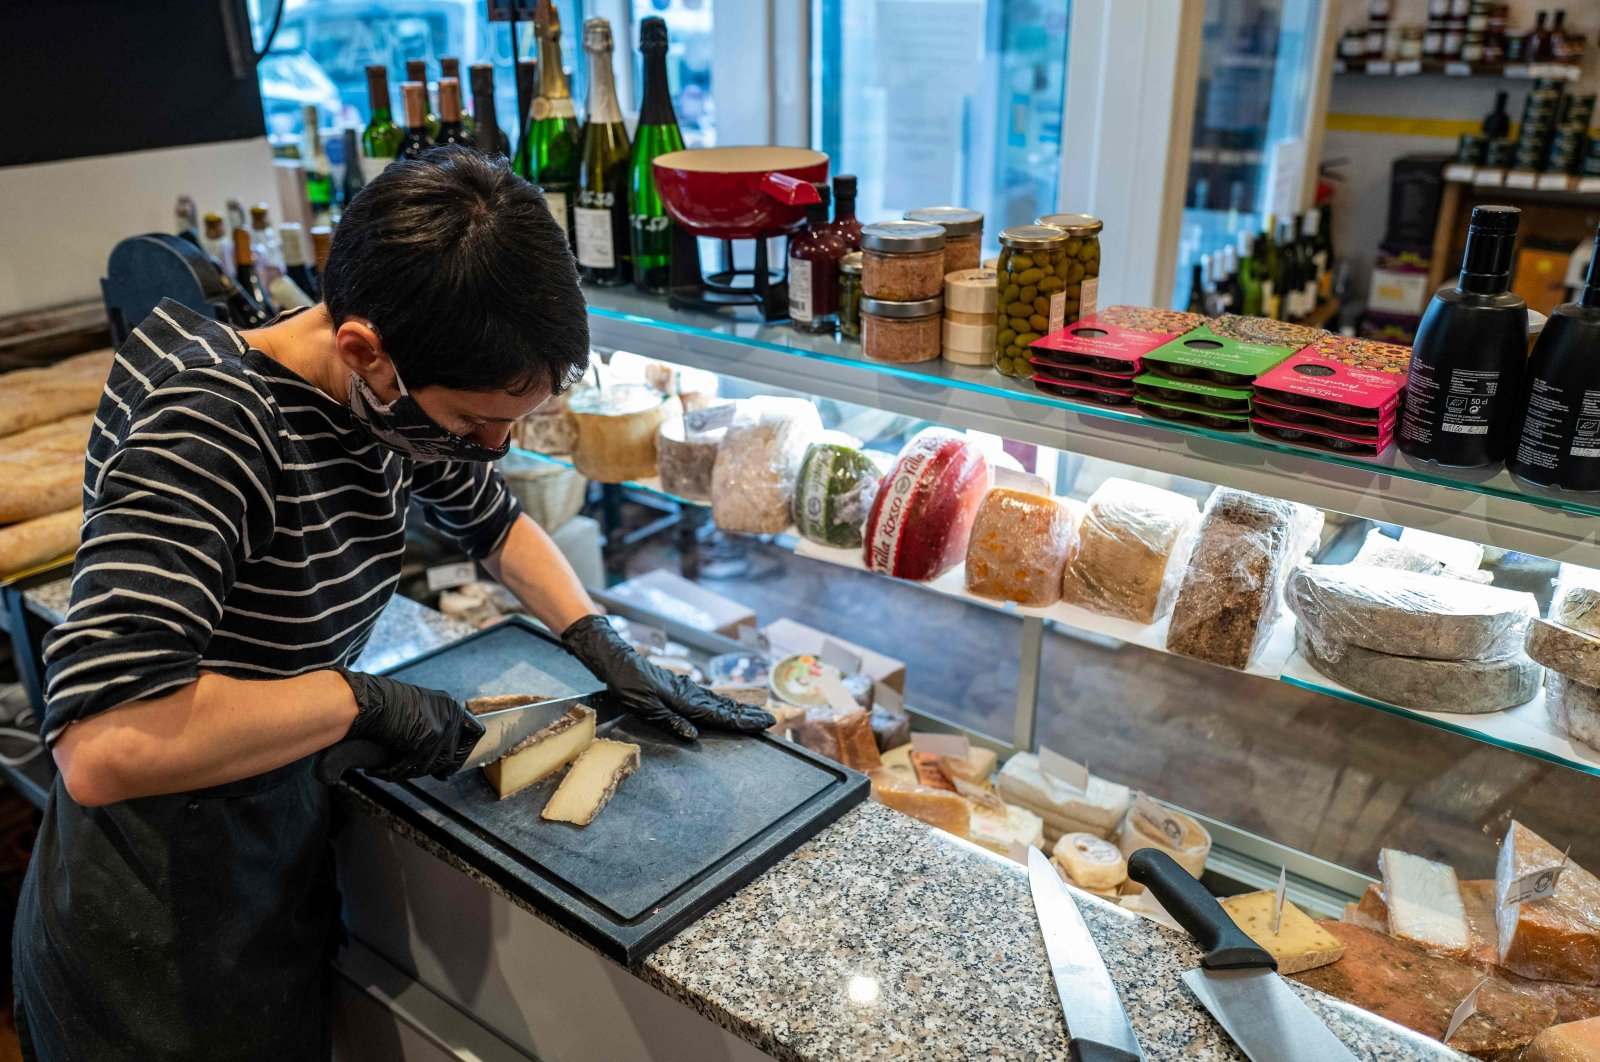 An employee at the restaurant La Cantine d'Augusta prepares the cheese in this newly refurbished restaurant in Berlin's Schoeneberg district, Germany, Nov. 11, 2020. (AFP Photo)